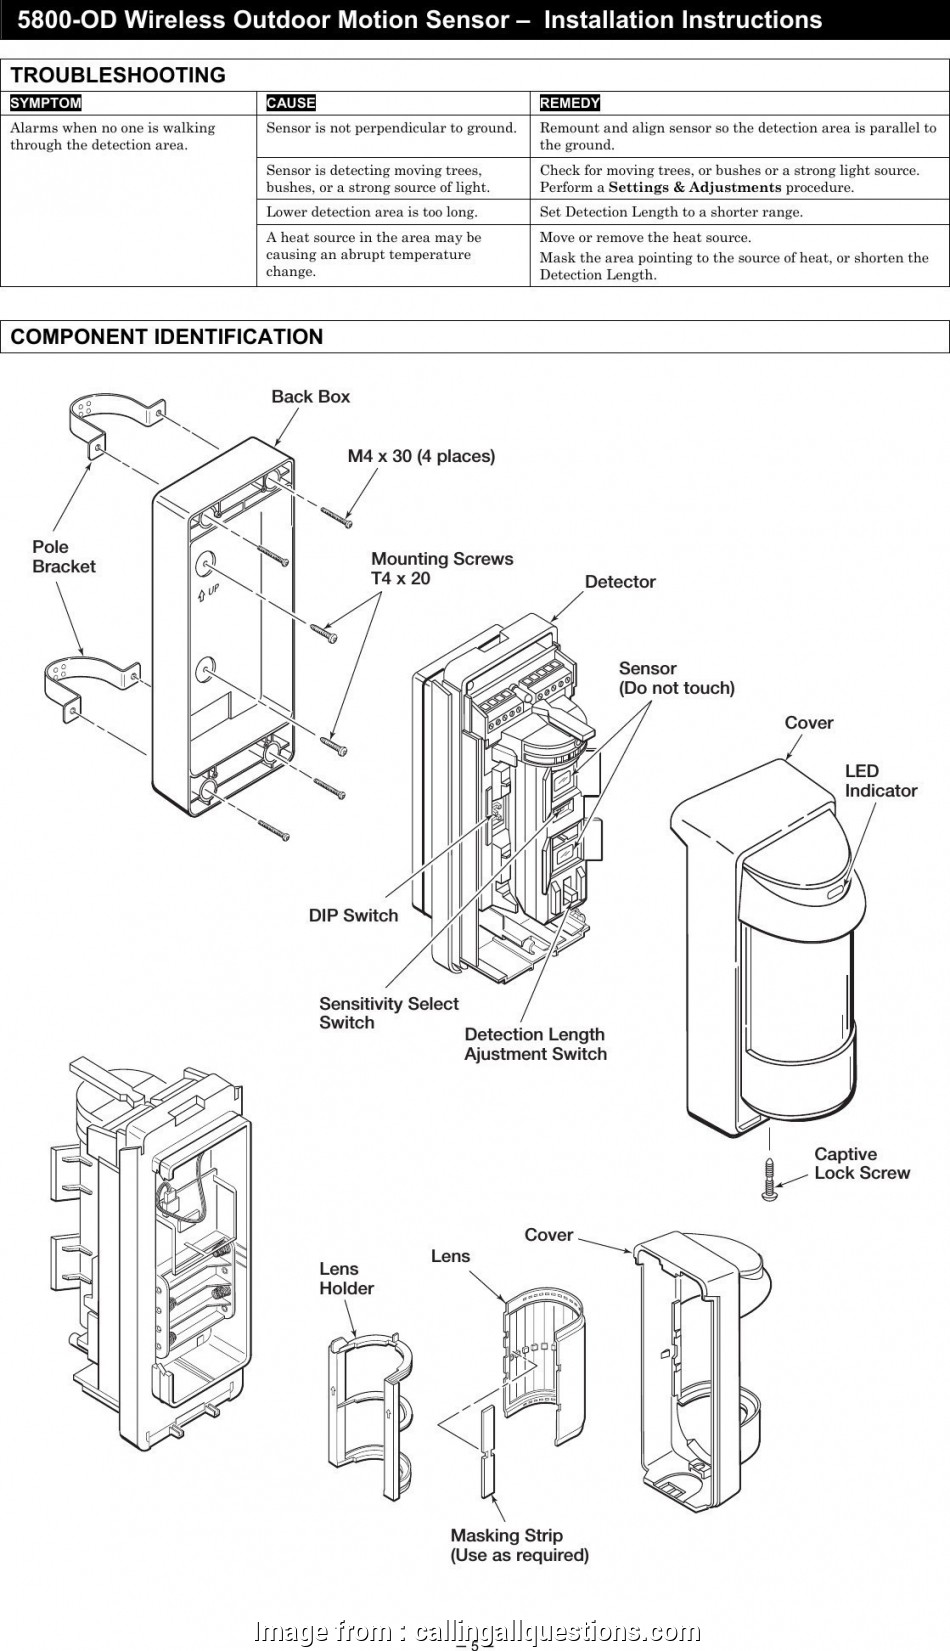 How To Wire A Motion Light Outside Practical Heath Zenith Motion Sensor Light Wiring Diagram